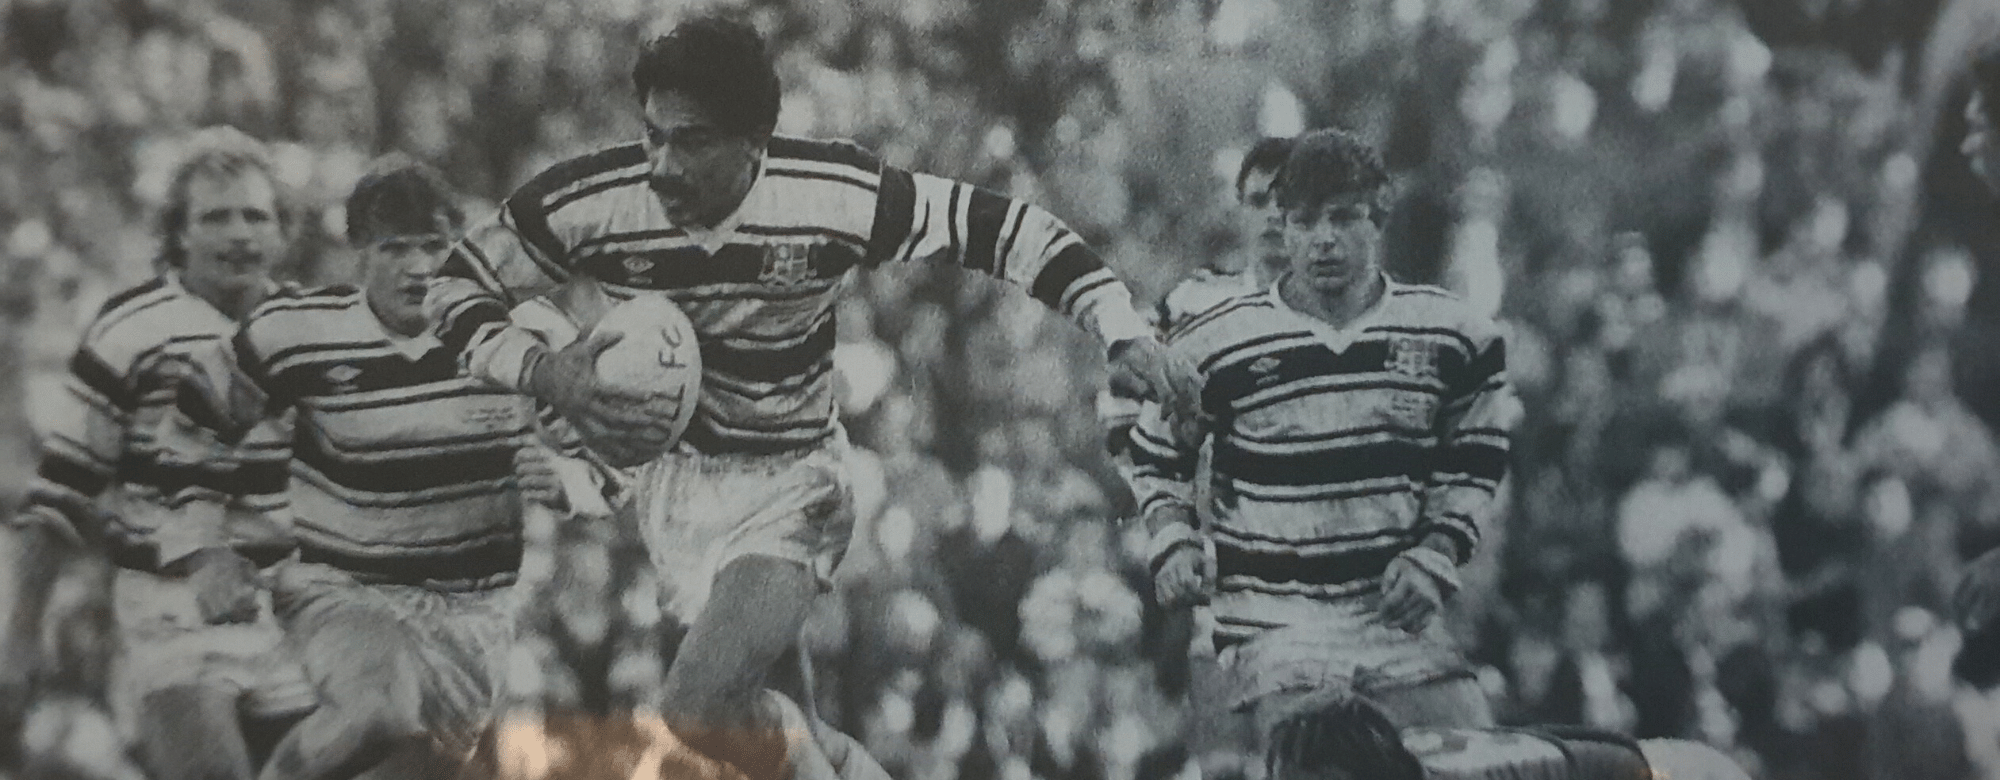 On This Day: Hull Come From Behind To Down Rovers In Yorkshire Cup Final